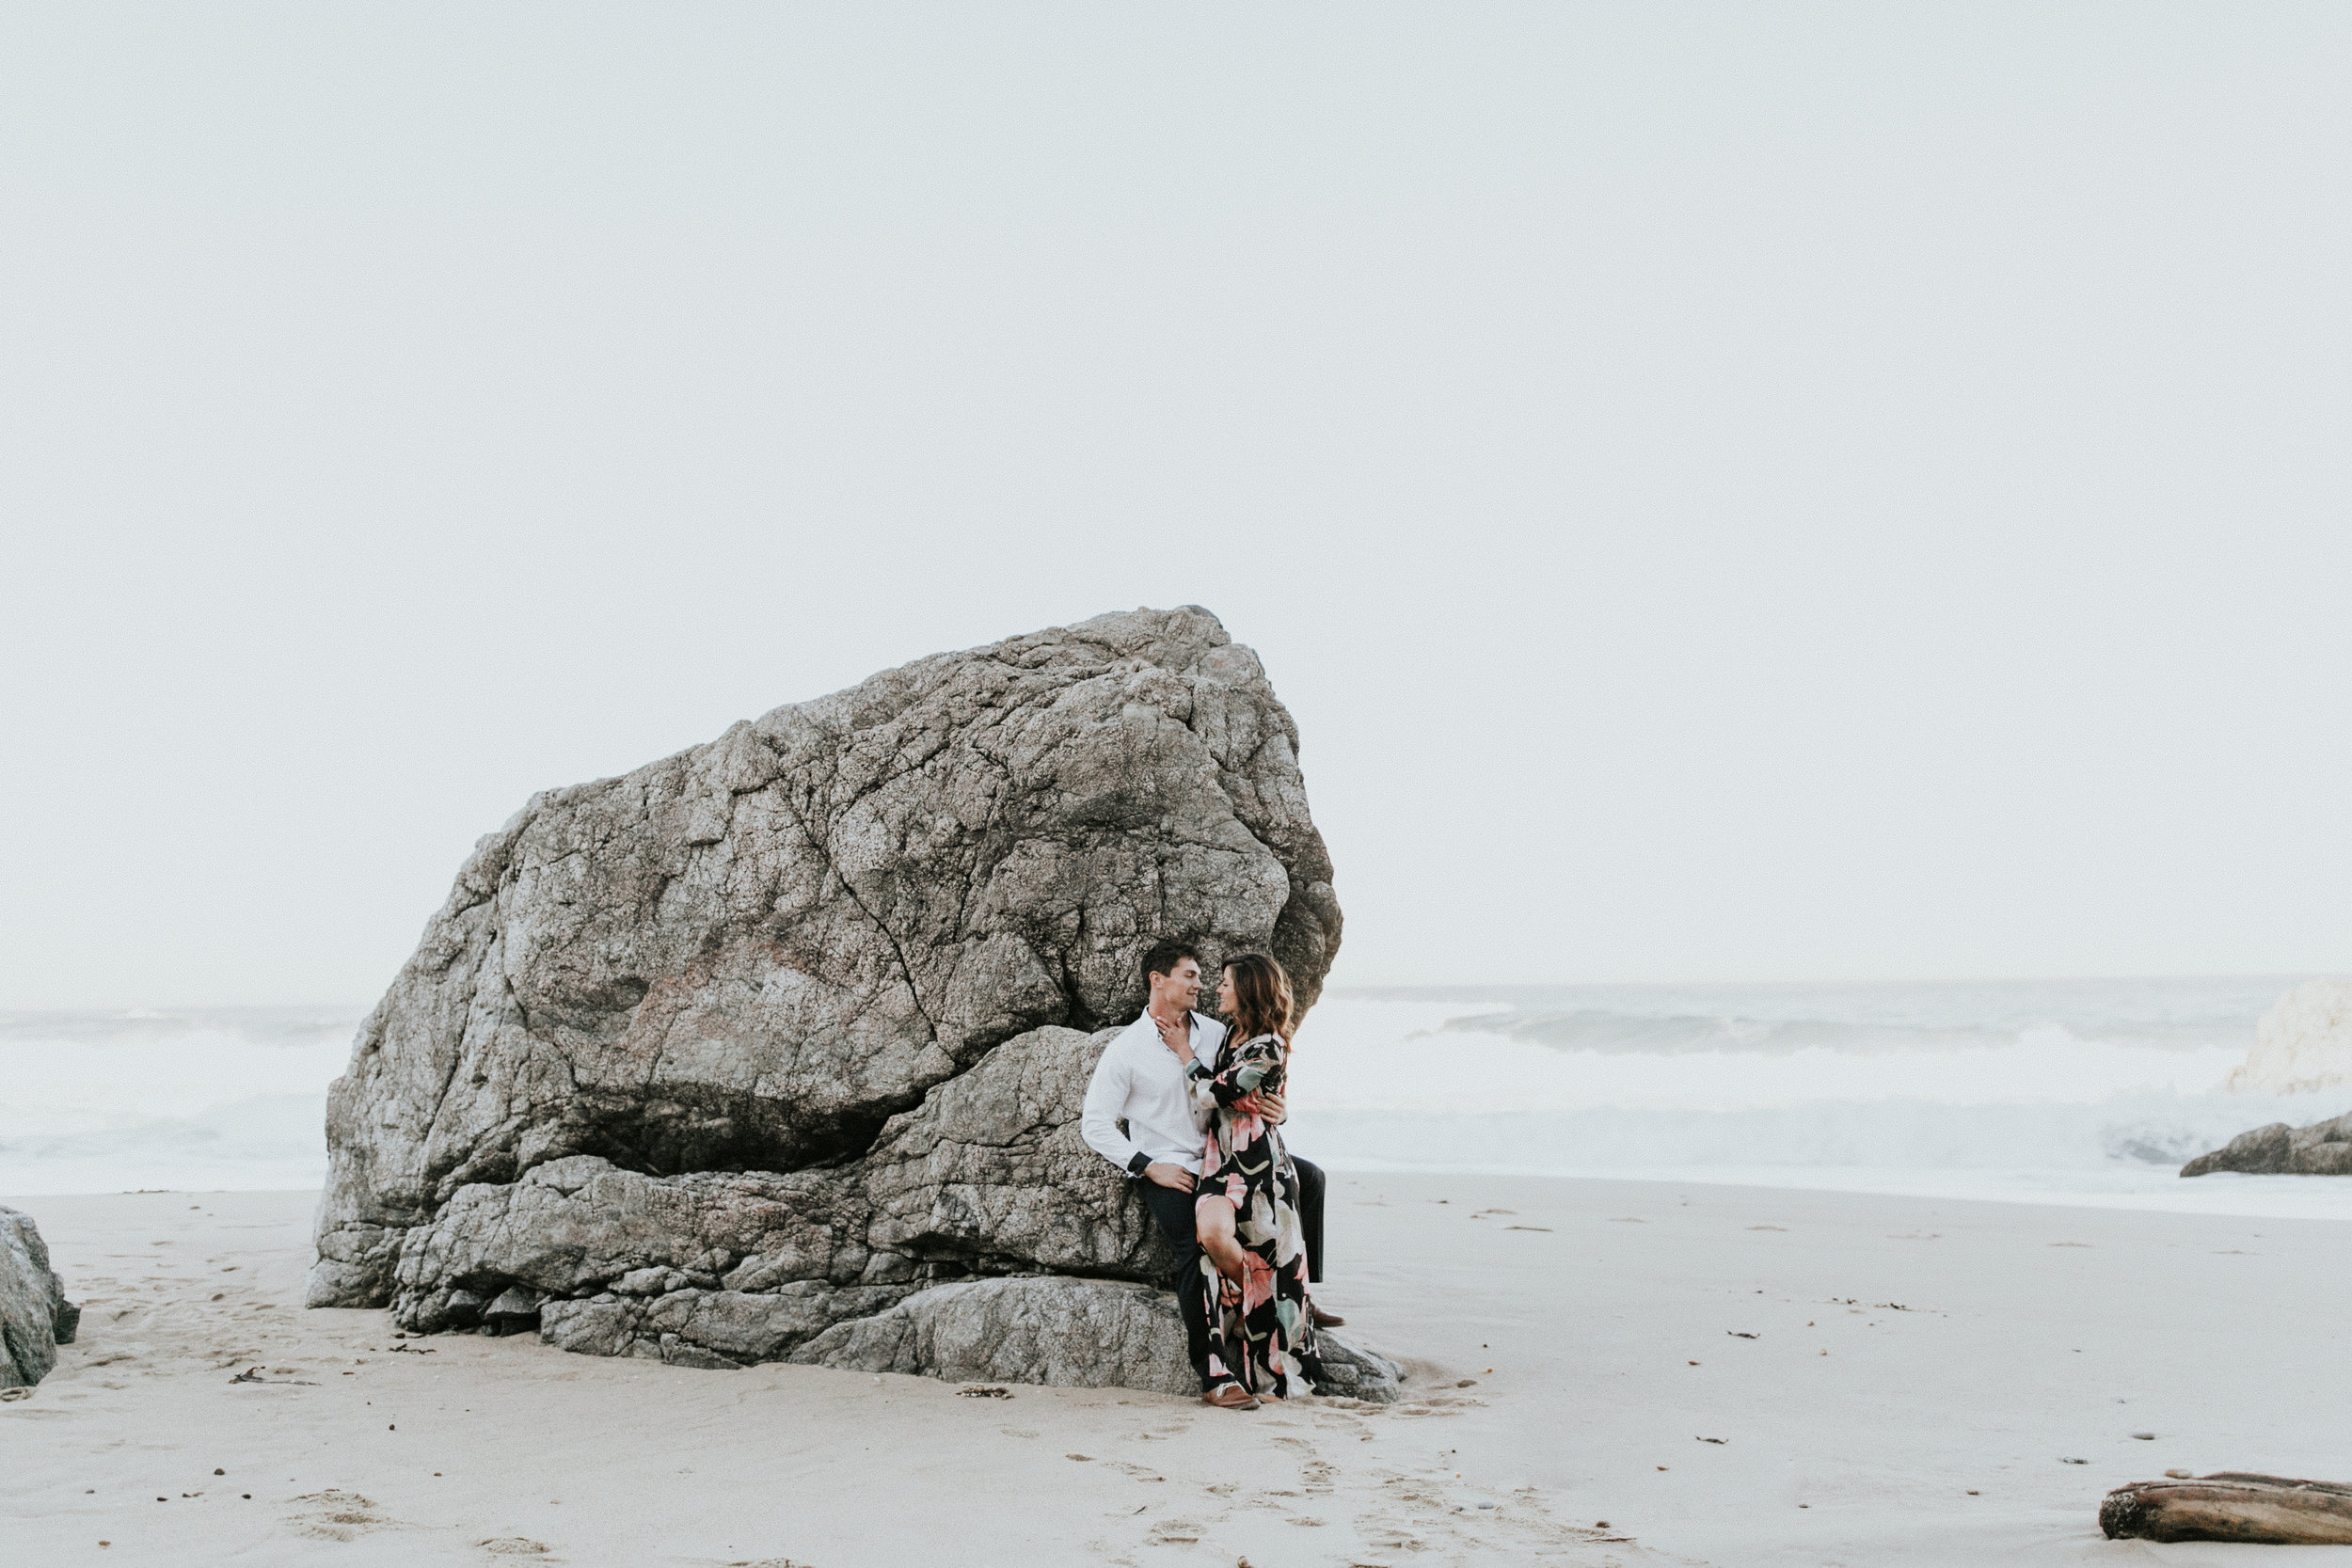 gracetphotography-destination-wedding-photographer-bigsur-adventure-elopement-16.jpg